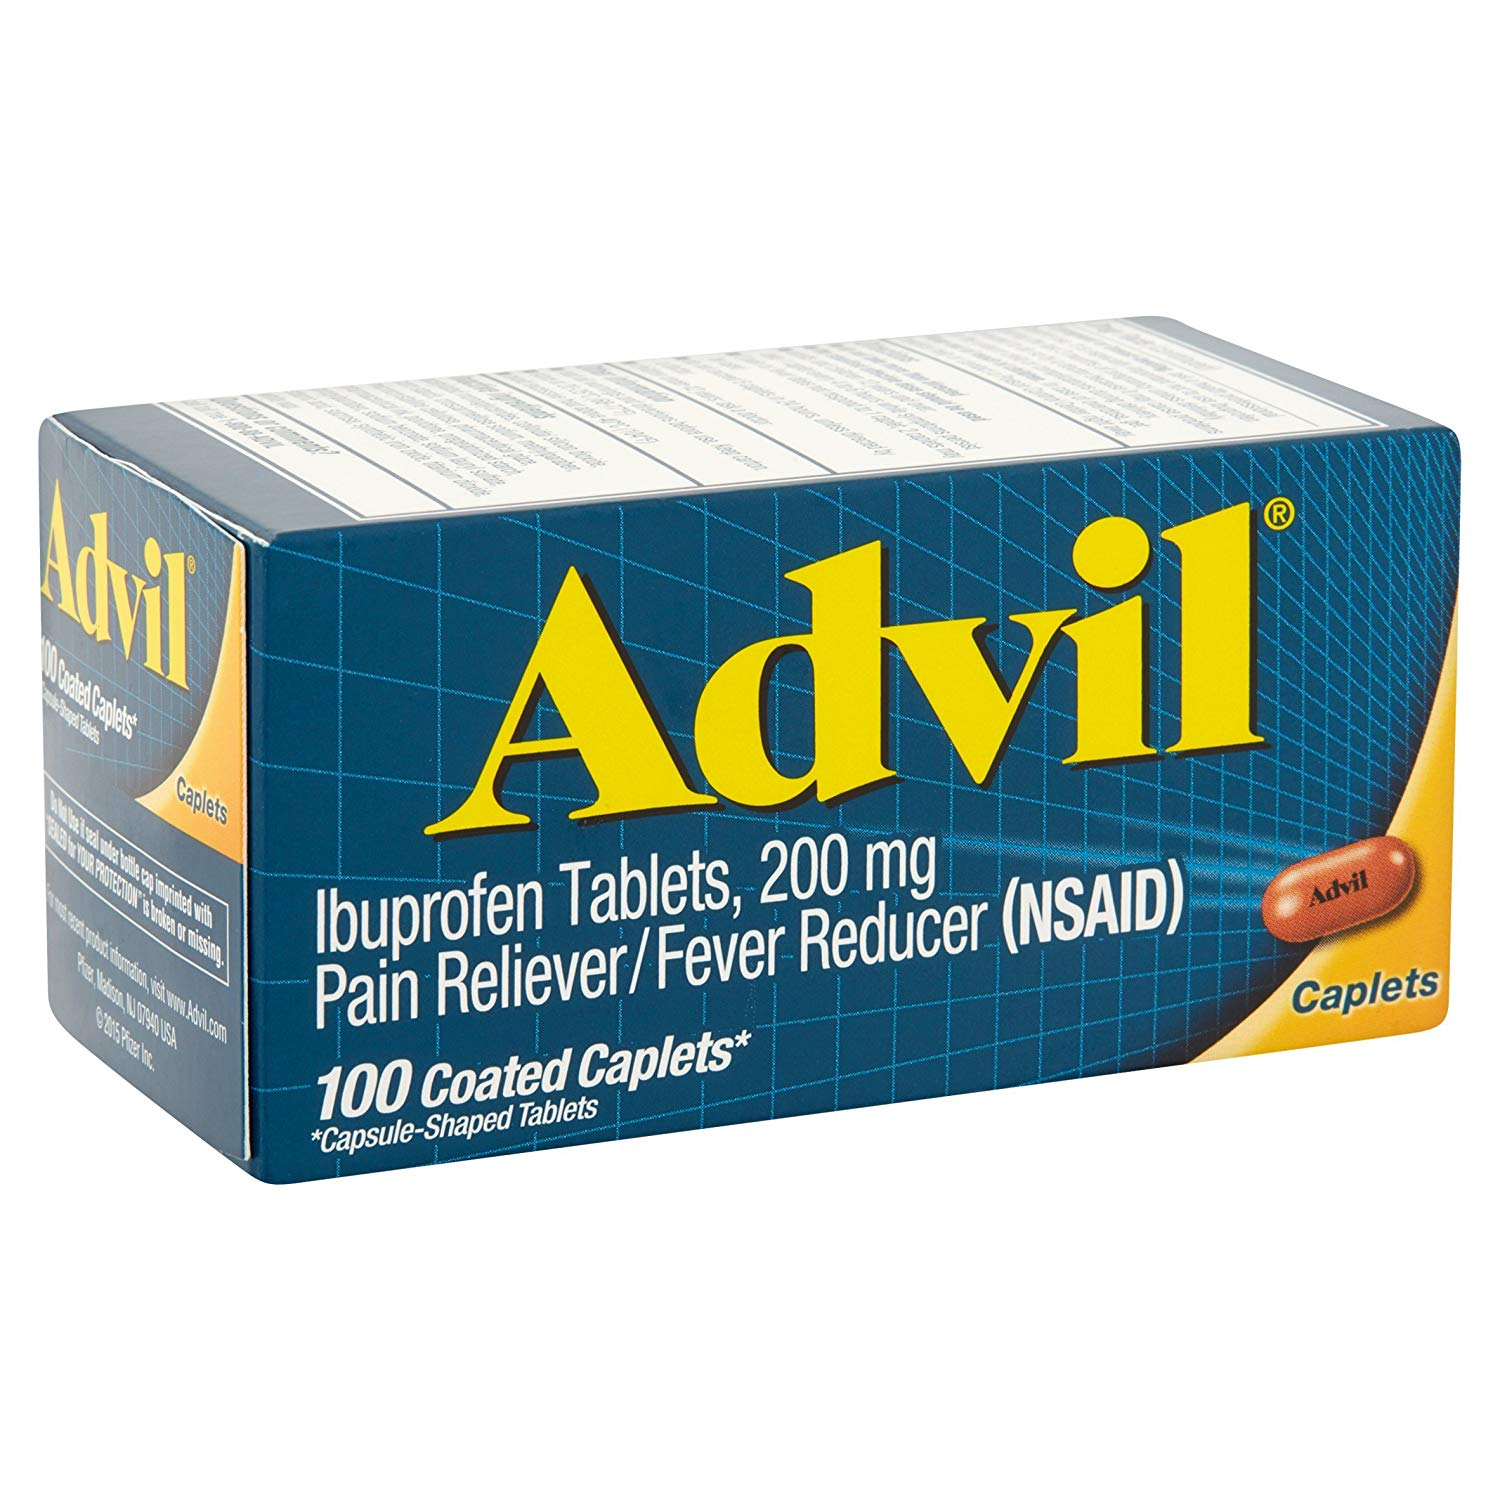 Advil Ibuprofen 200mg - 100 Coated Caplets